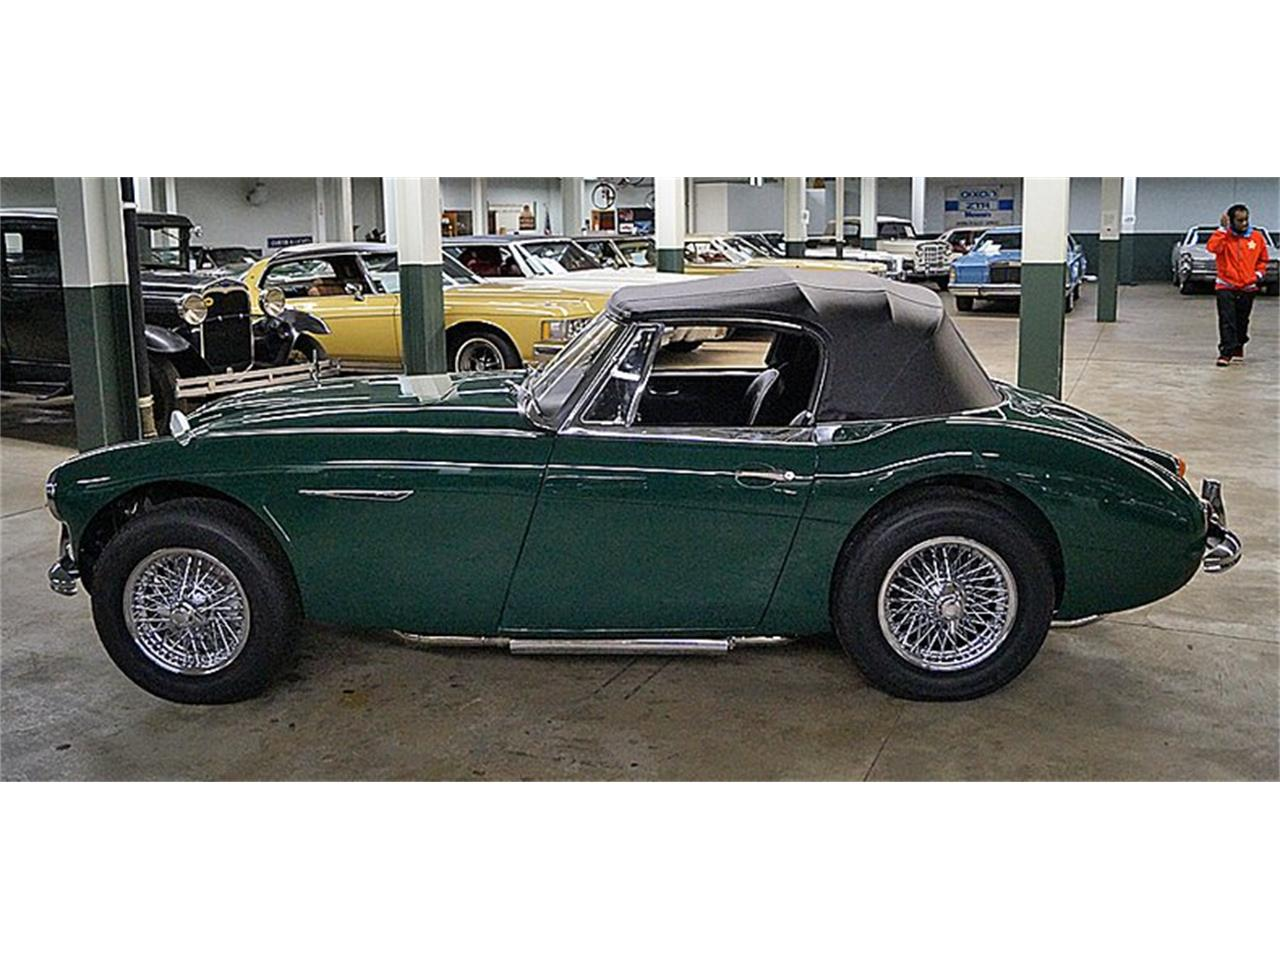 Large Picture of '67 Austin-Healey 3000 Mark III BJ8 located in New York Auction Vehicle Offered by Saratoga Auto Auction - R16P